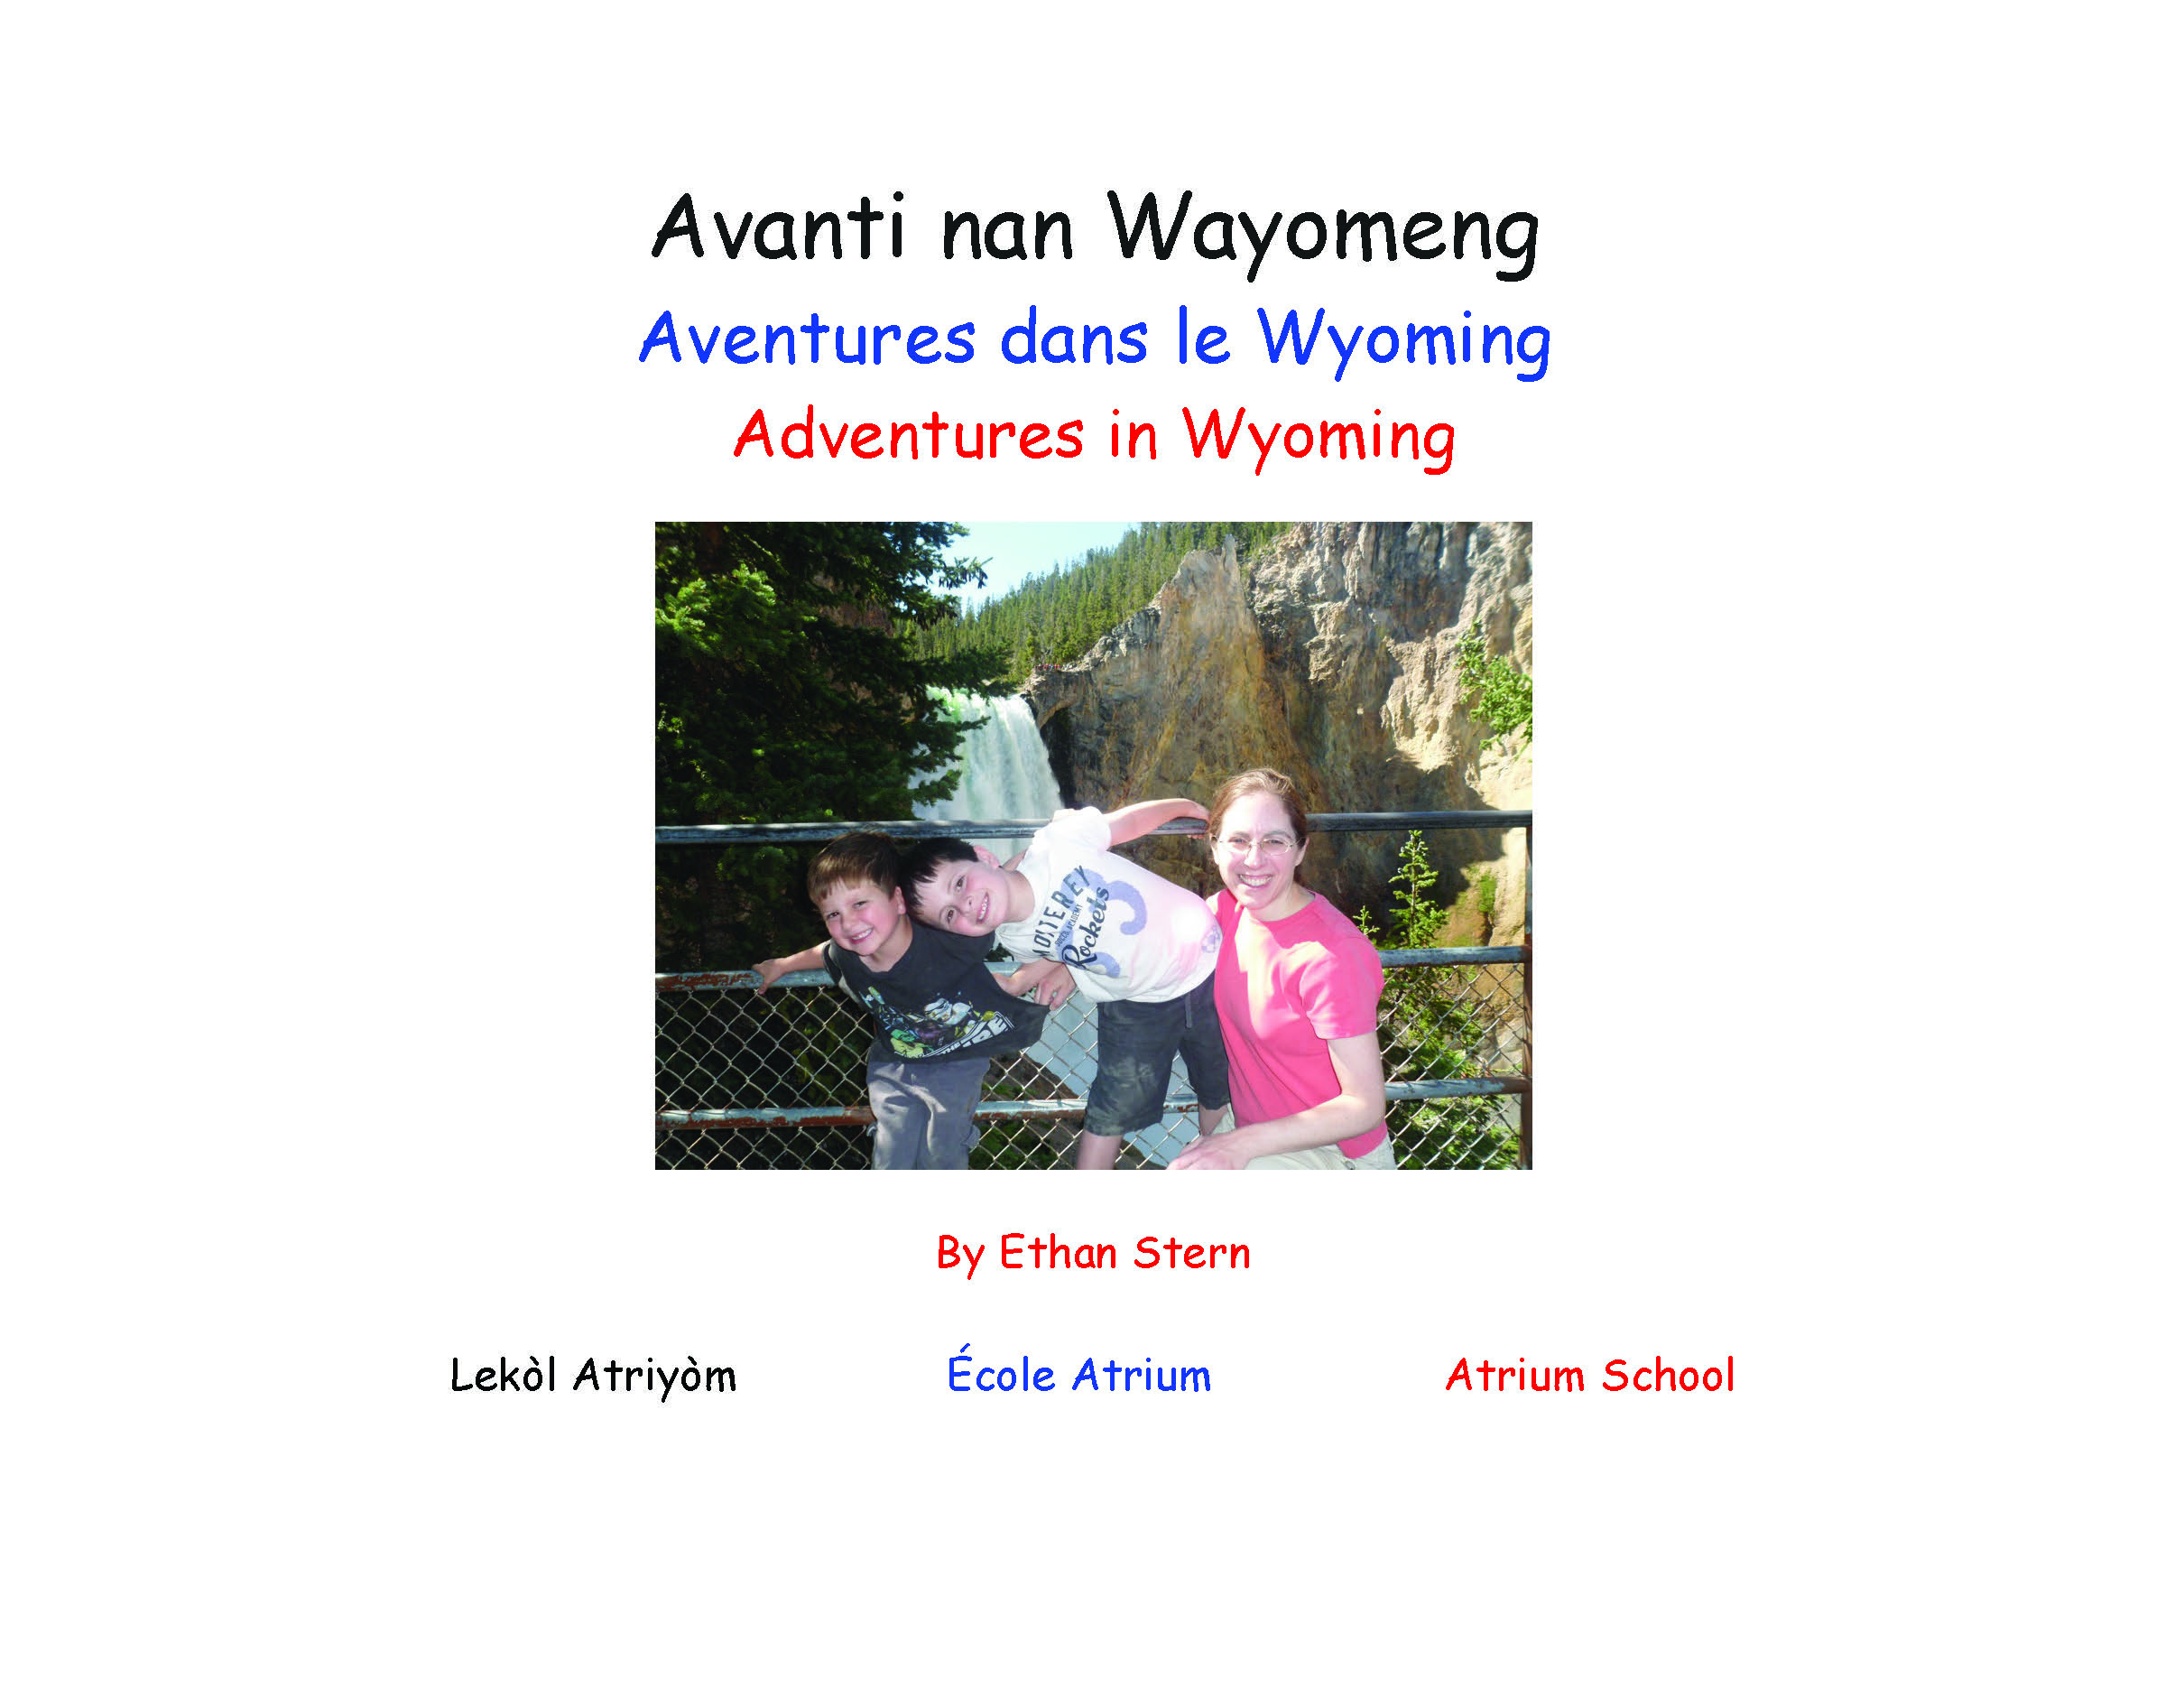 Avanti nan Wayomeng / Adventures in Wyoming